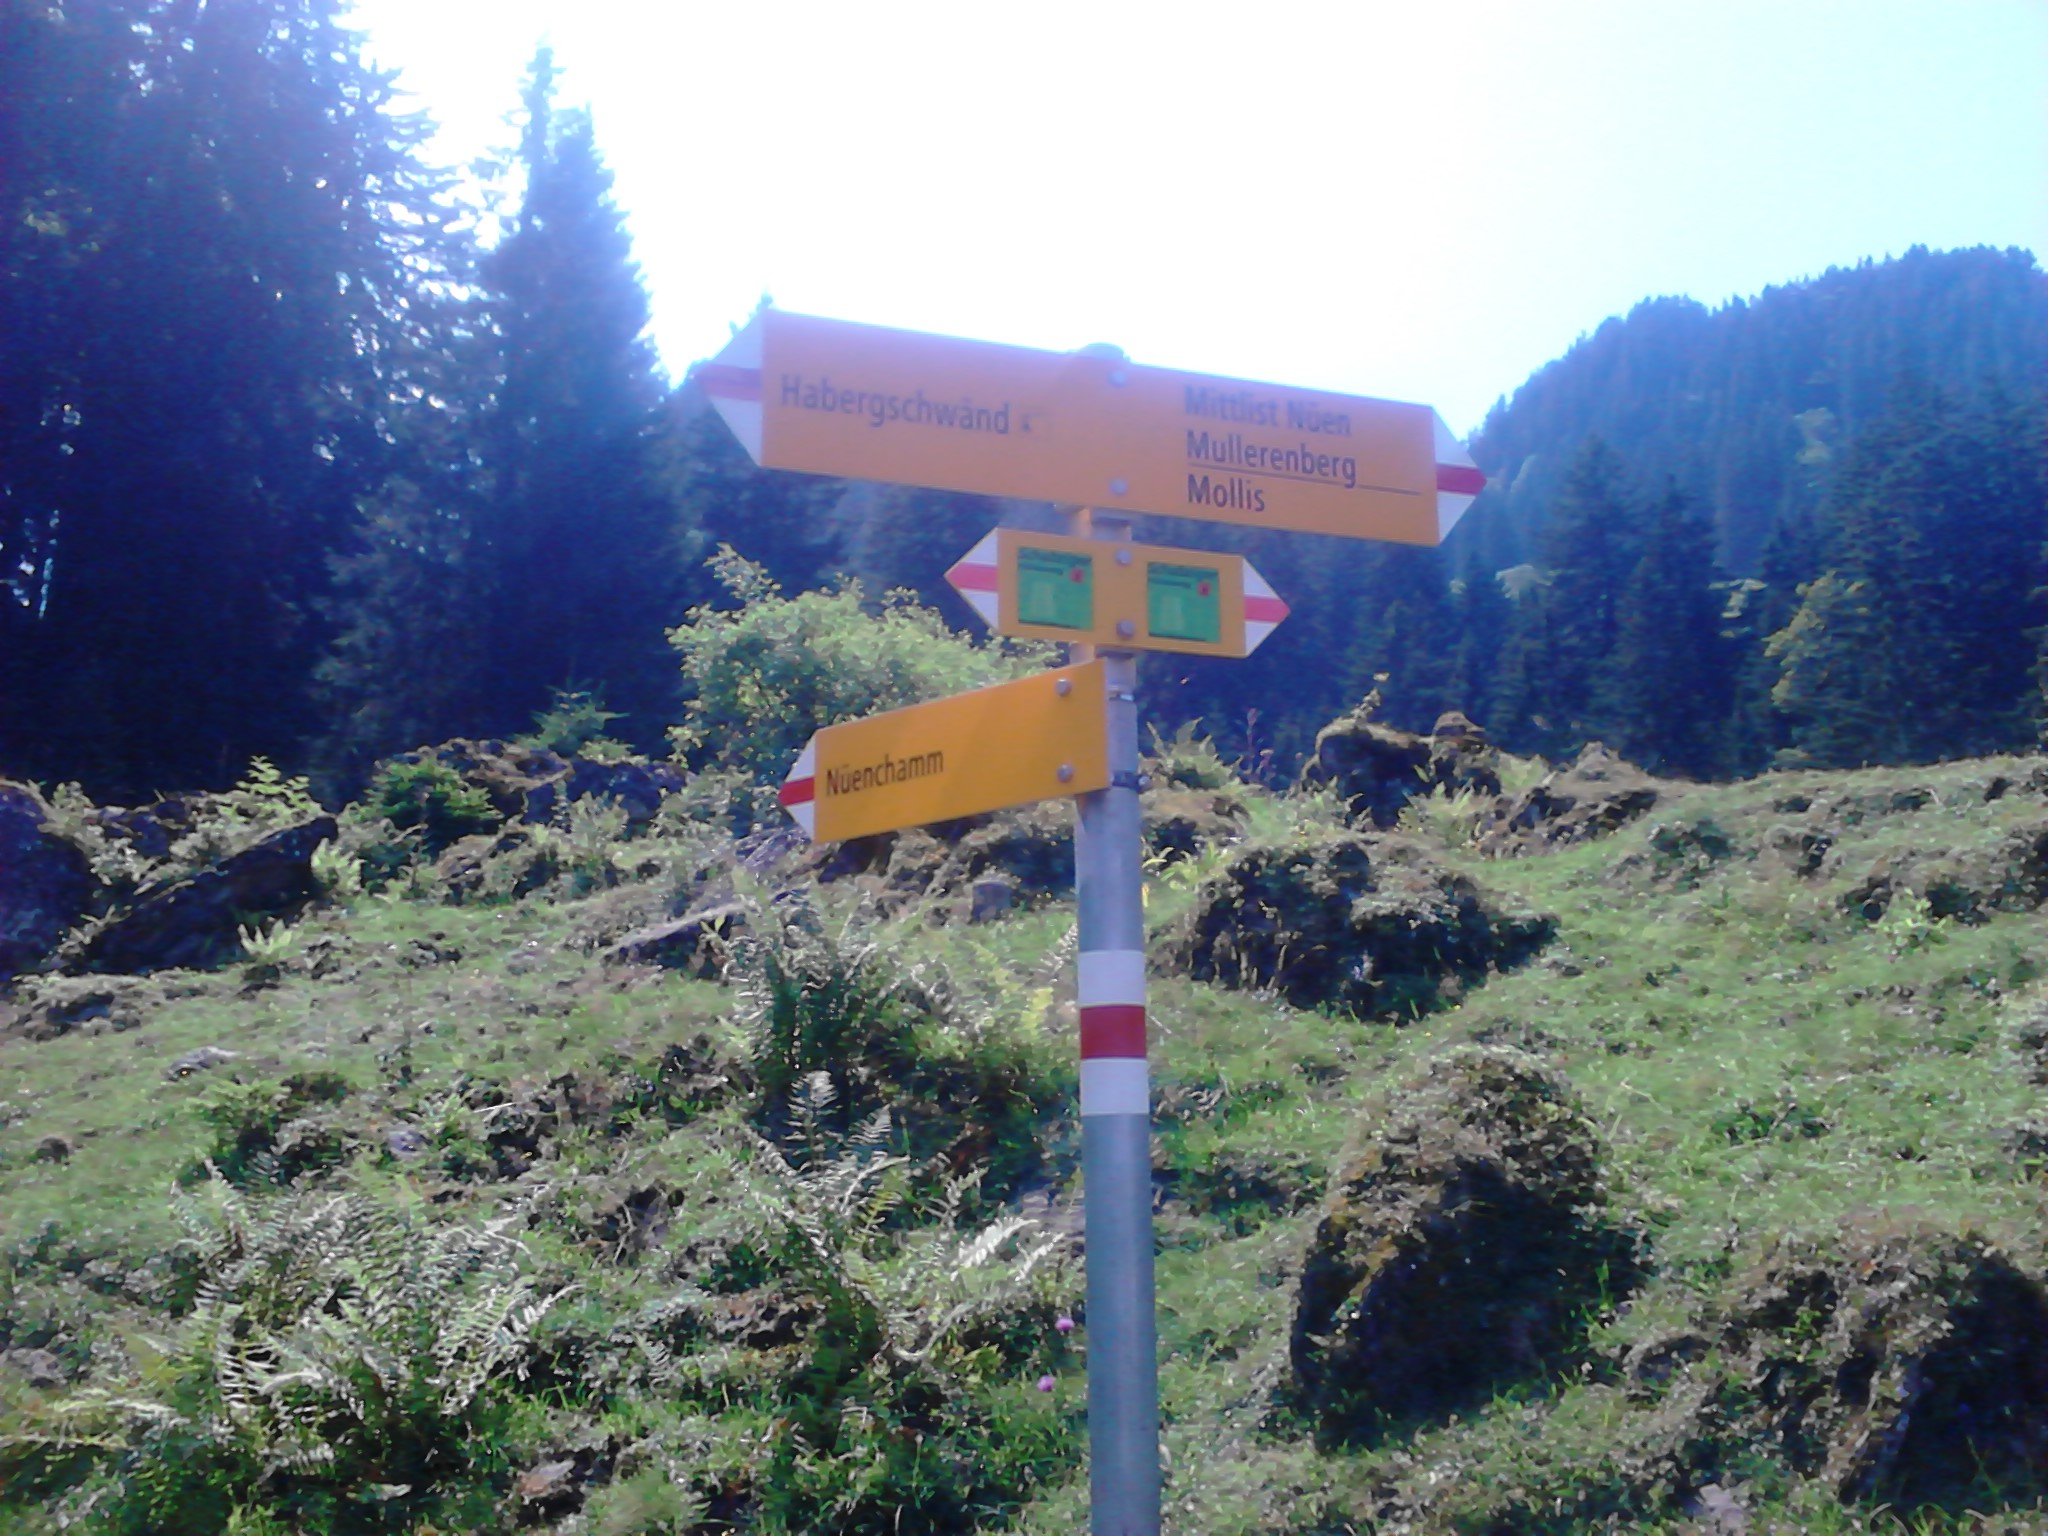 Wanderweg sign